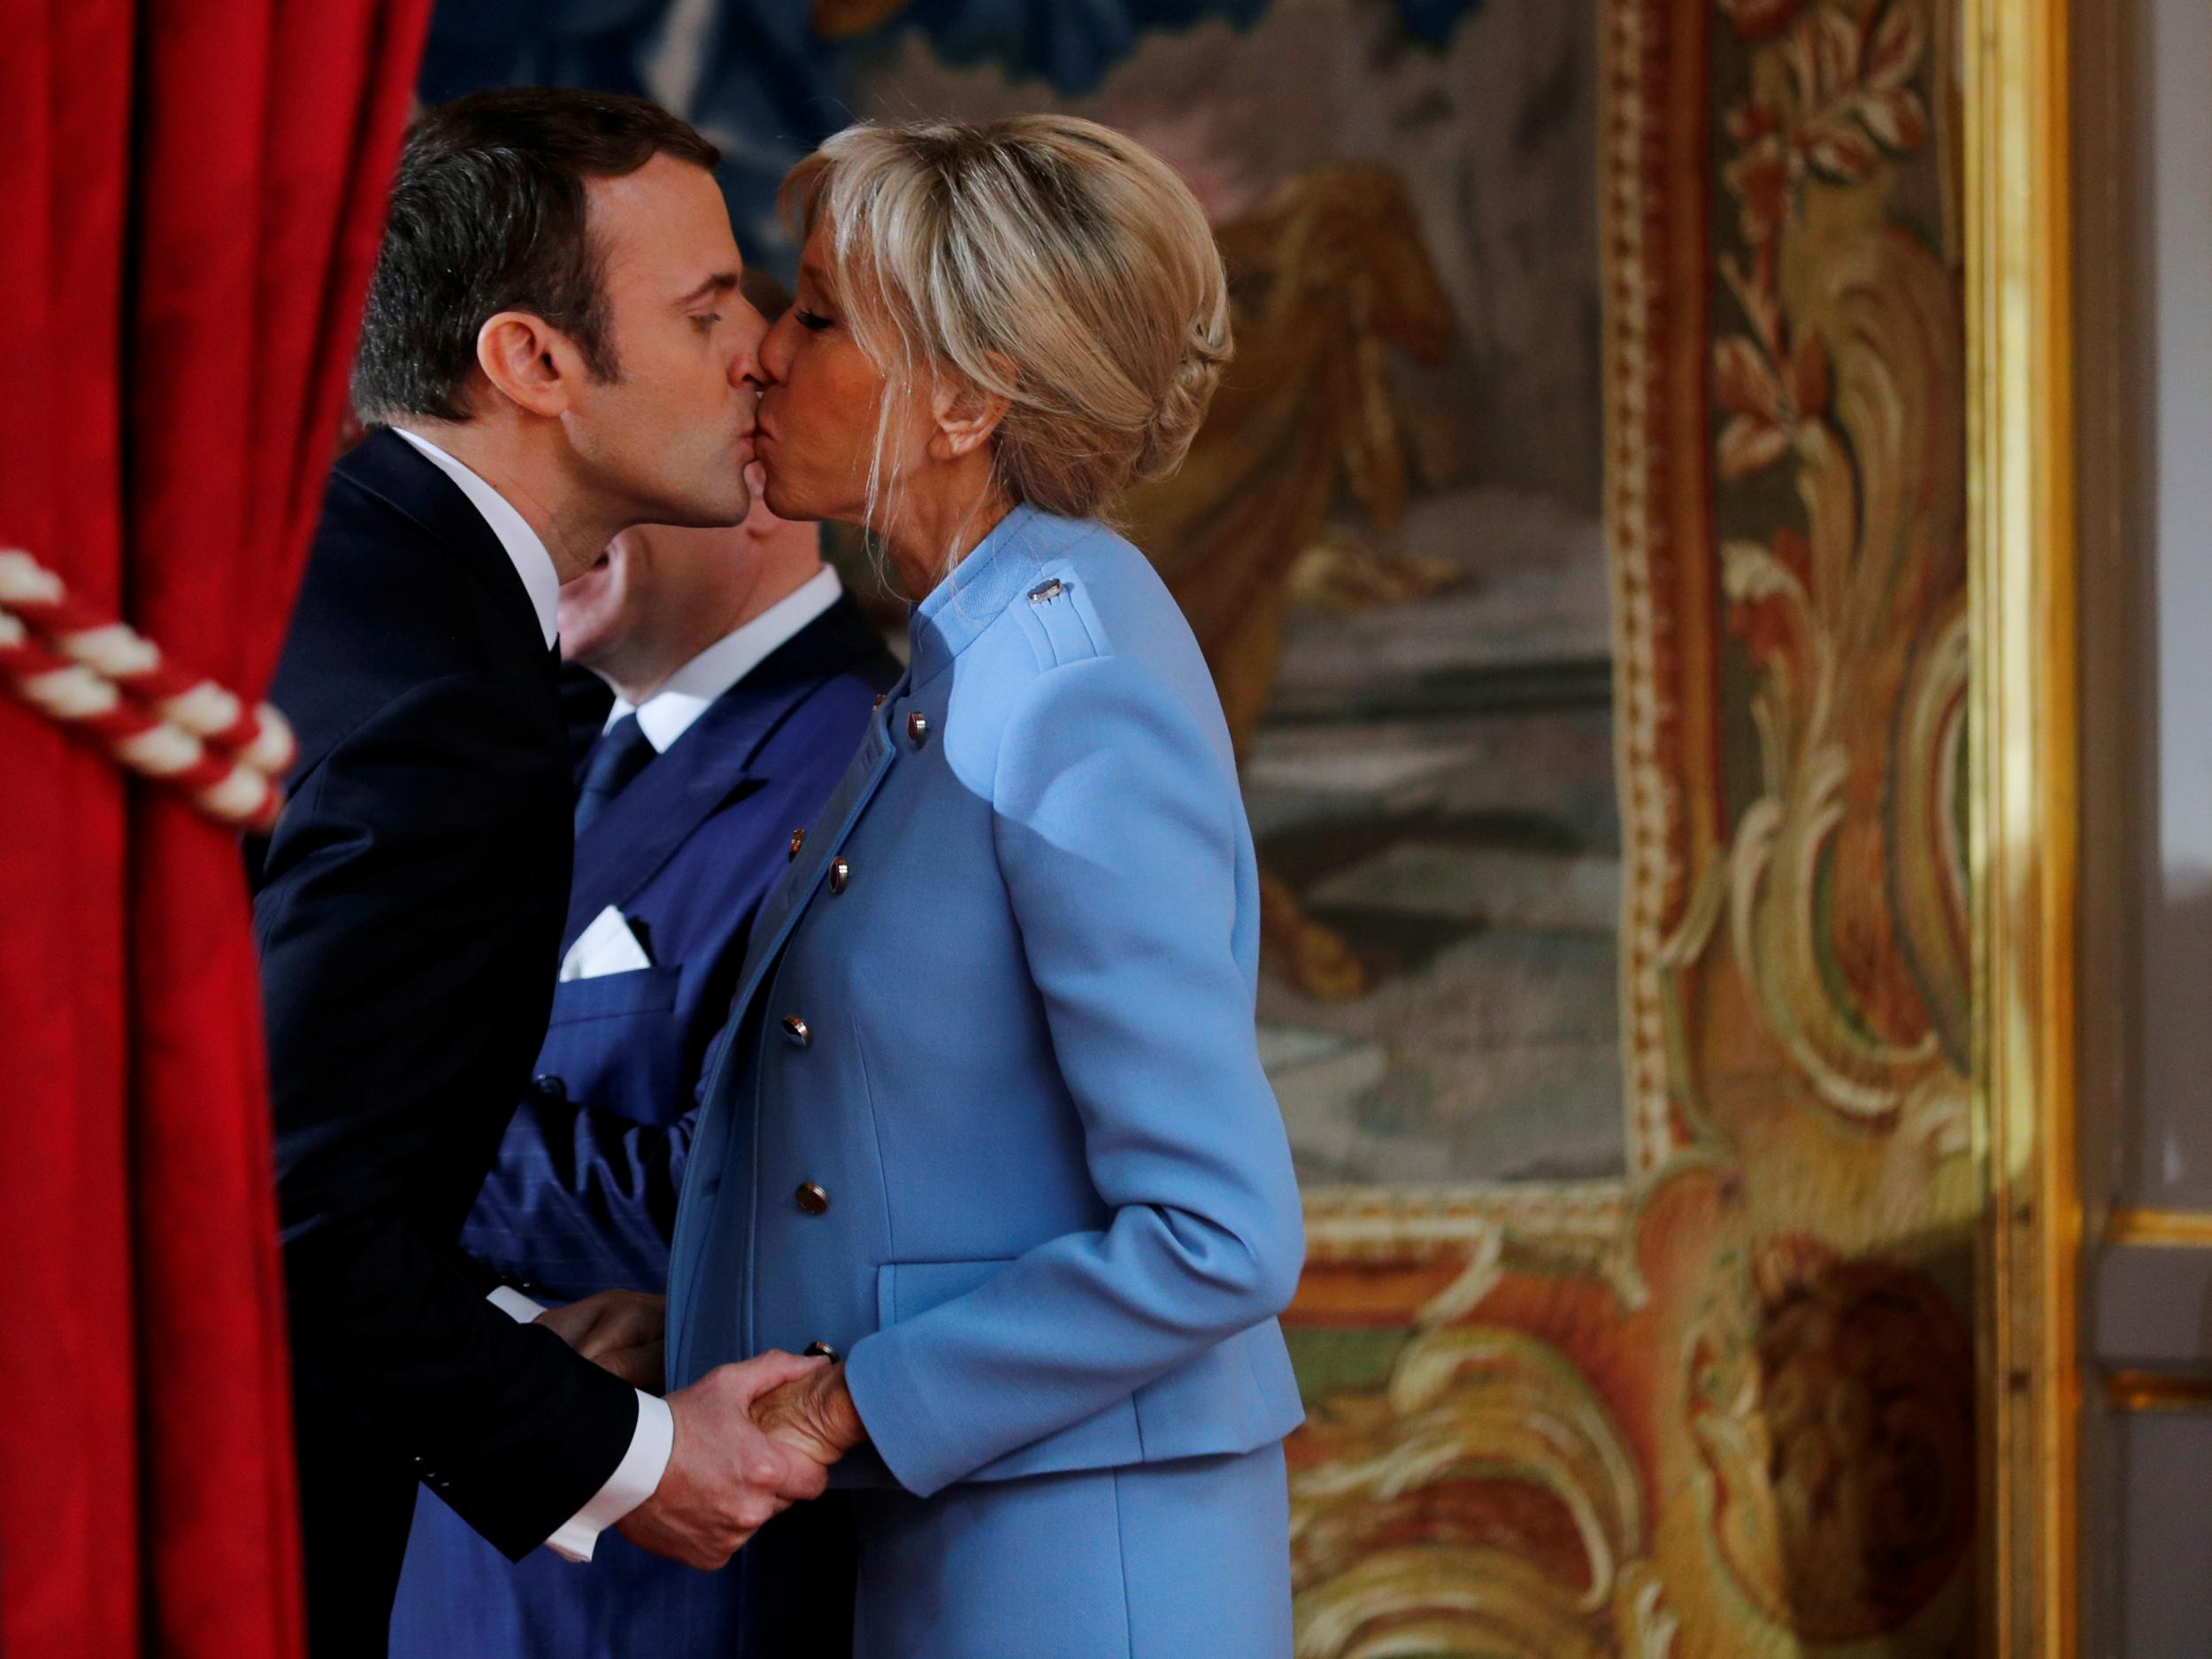 Emmanuel Macron S Unconventional Marriage Reflects The Way France Is Changing The Independent The Independent